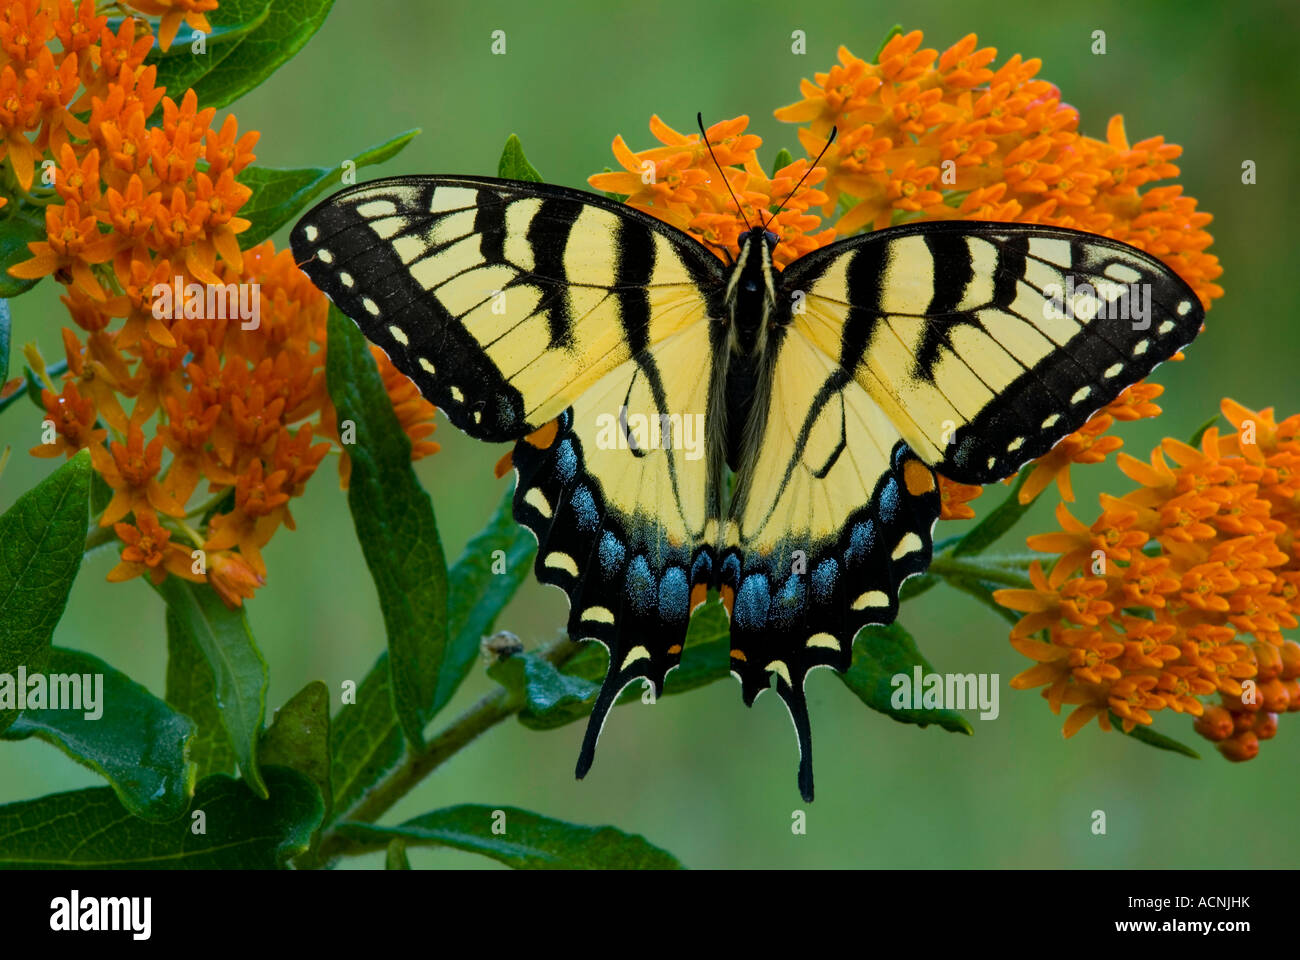 Eastern Tiger Swallowtail Butterfly Papilio glaucus on Butterfly Weed Asclepias tuberosa  E USA Stock Photo